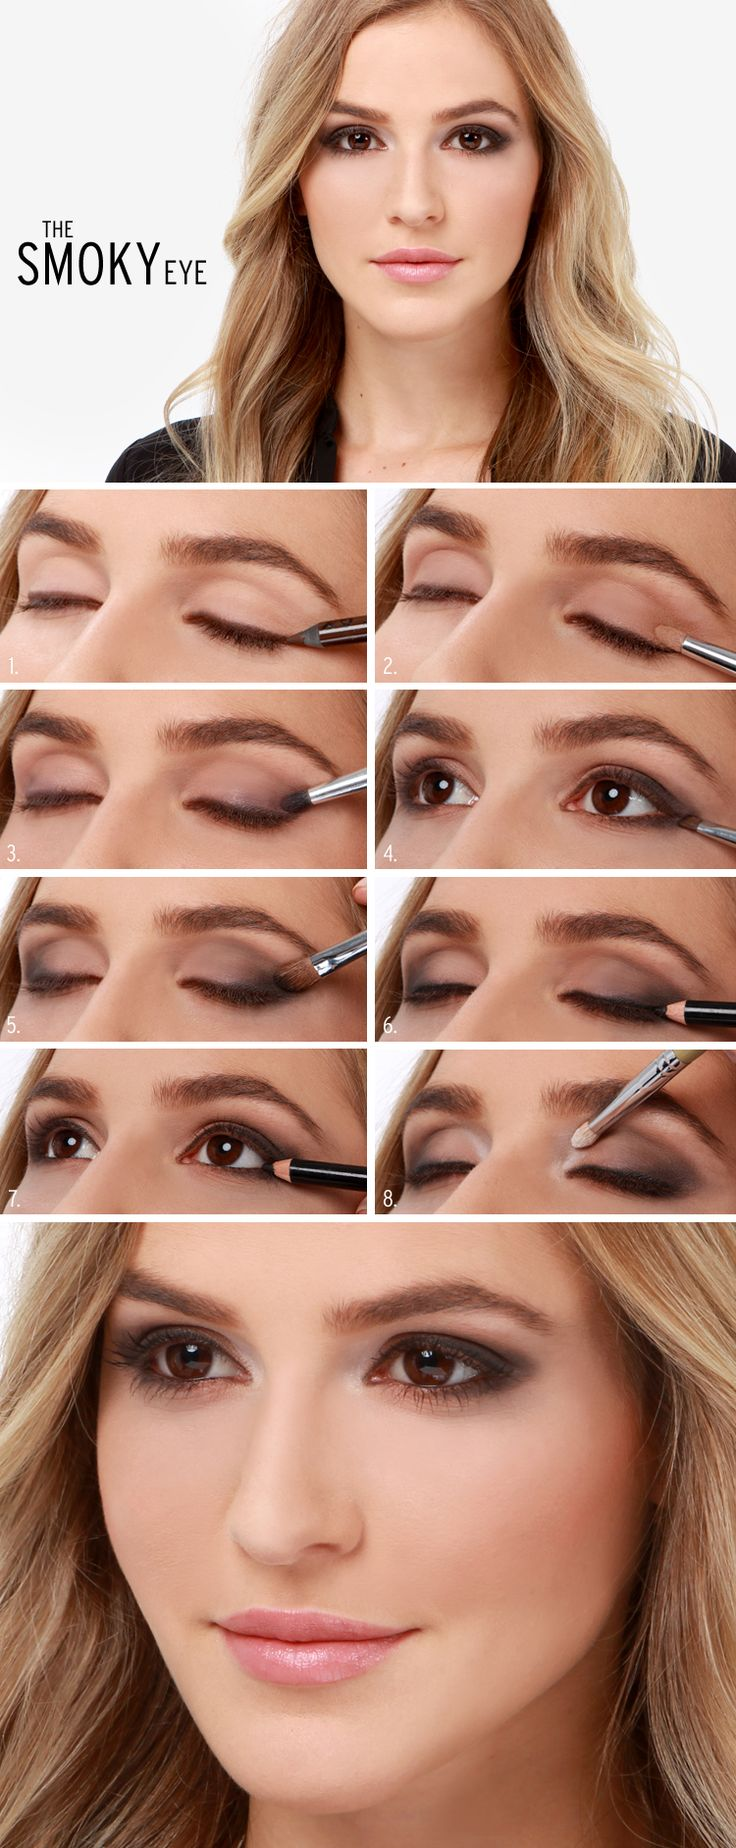 The Smoky Eye Makeup Tutorial at LuLus.com!